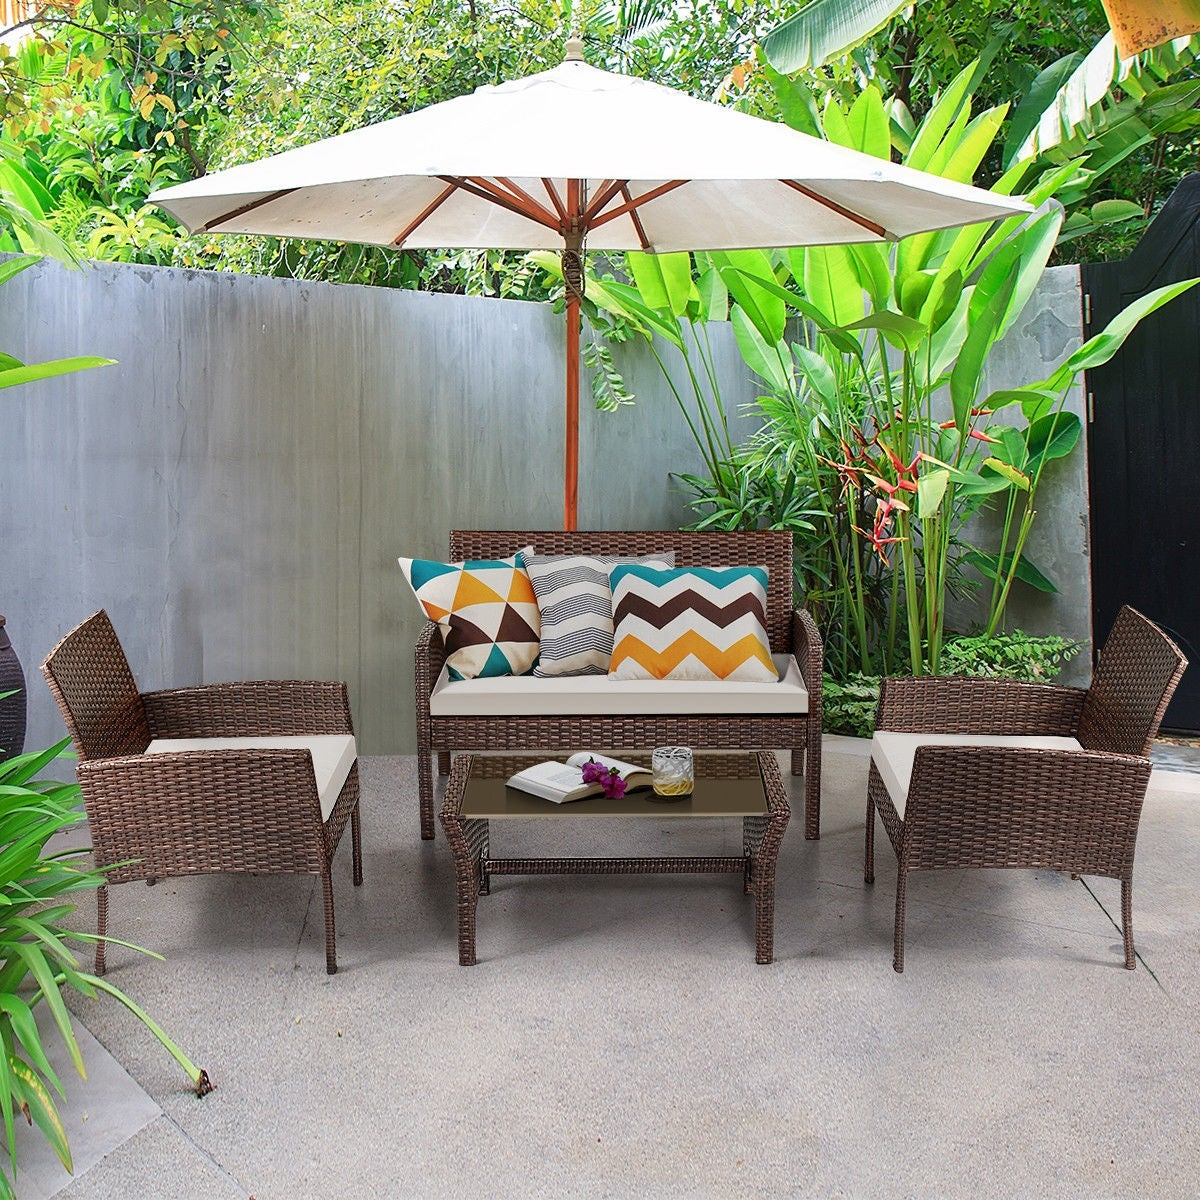 Rattan patio furniture find great outdoor seating dining deals shopping at overstock